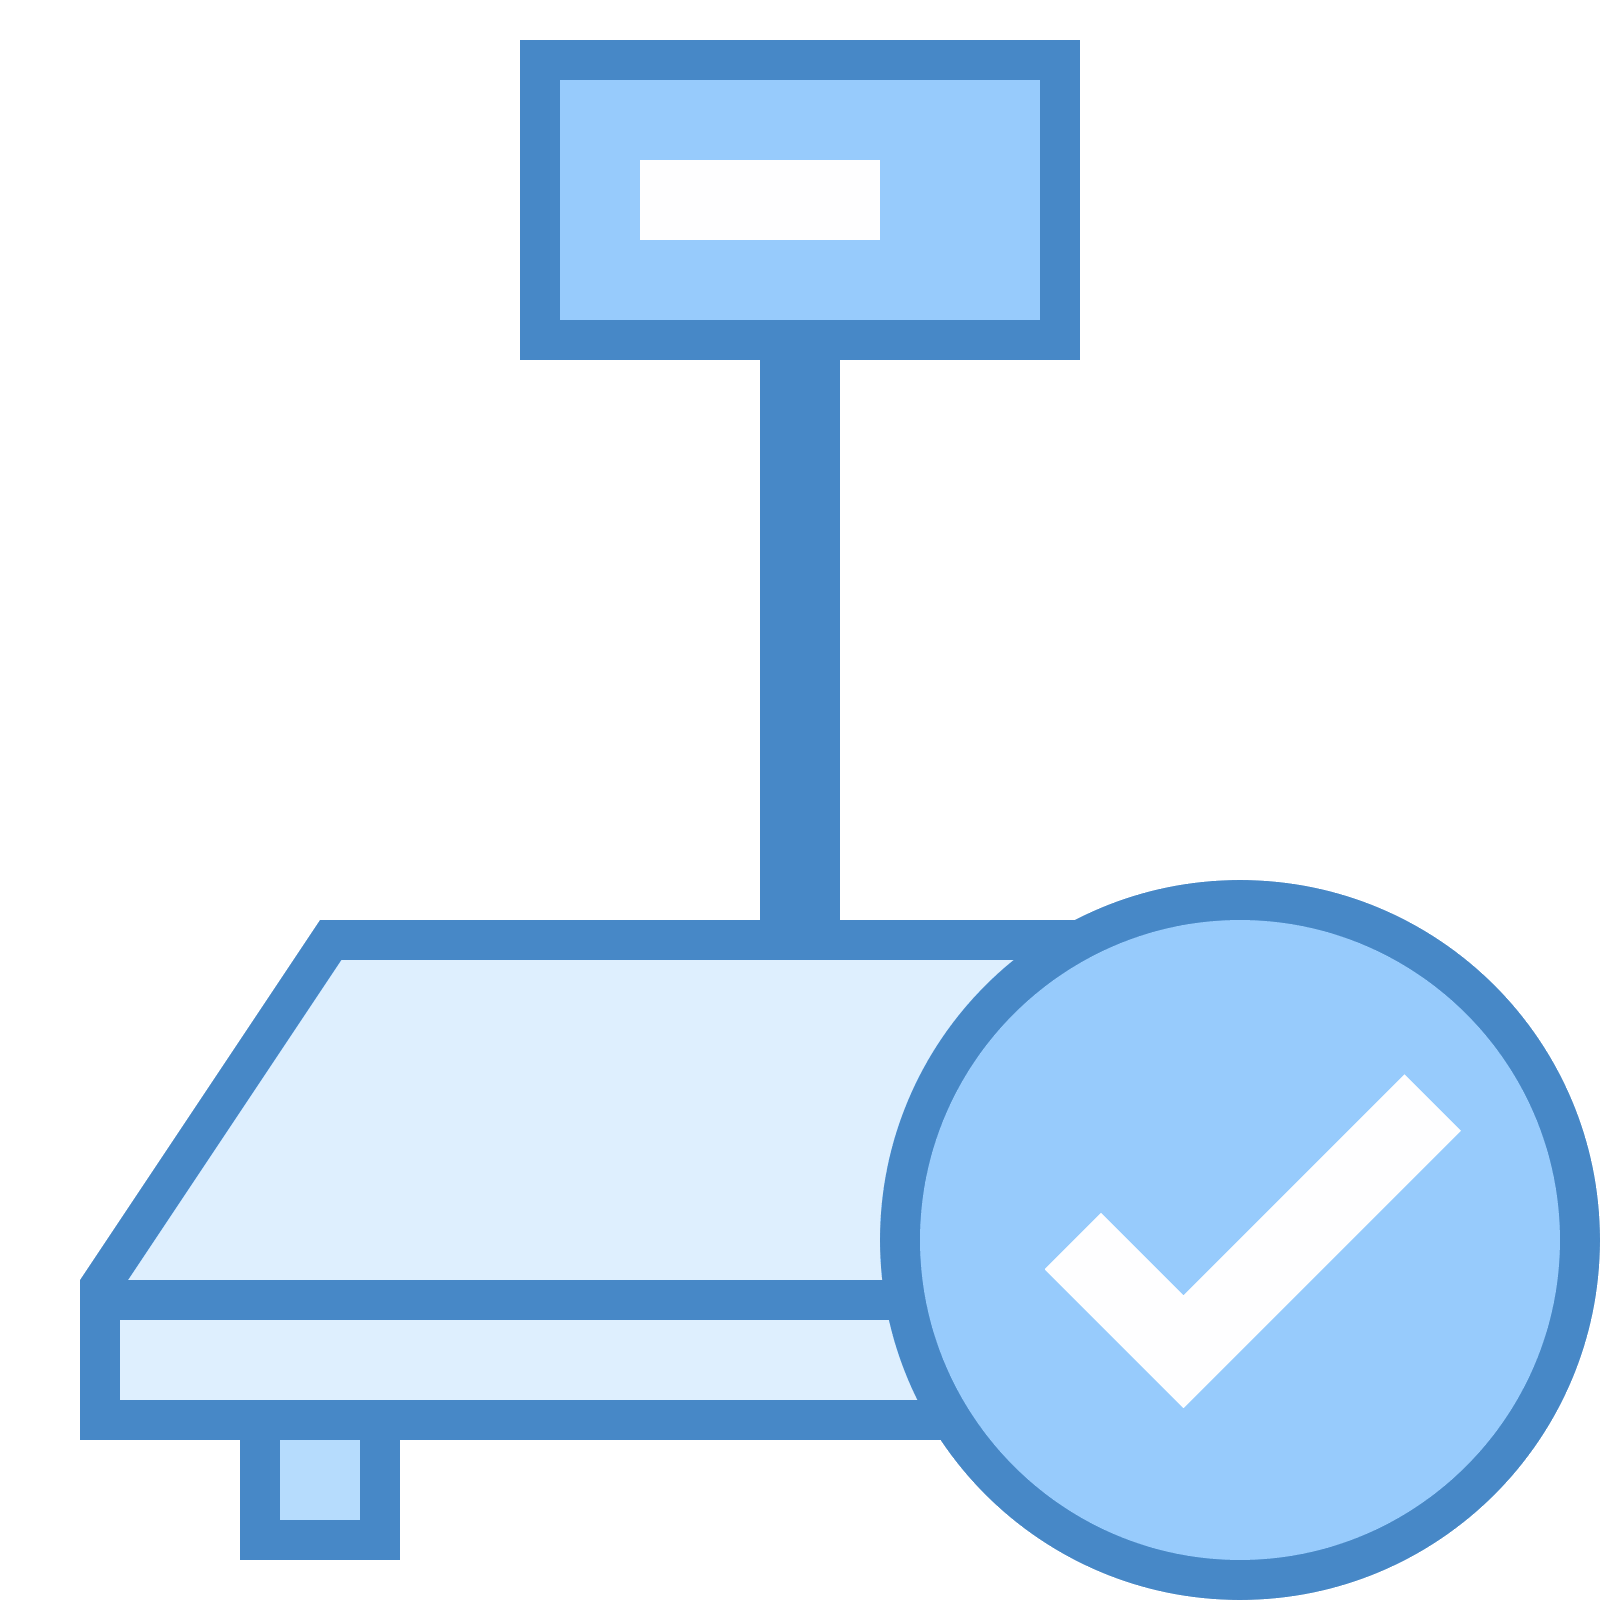 jpg transparent Vector computer side. Industrial scales connected icon